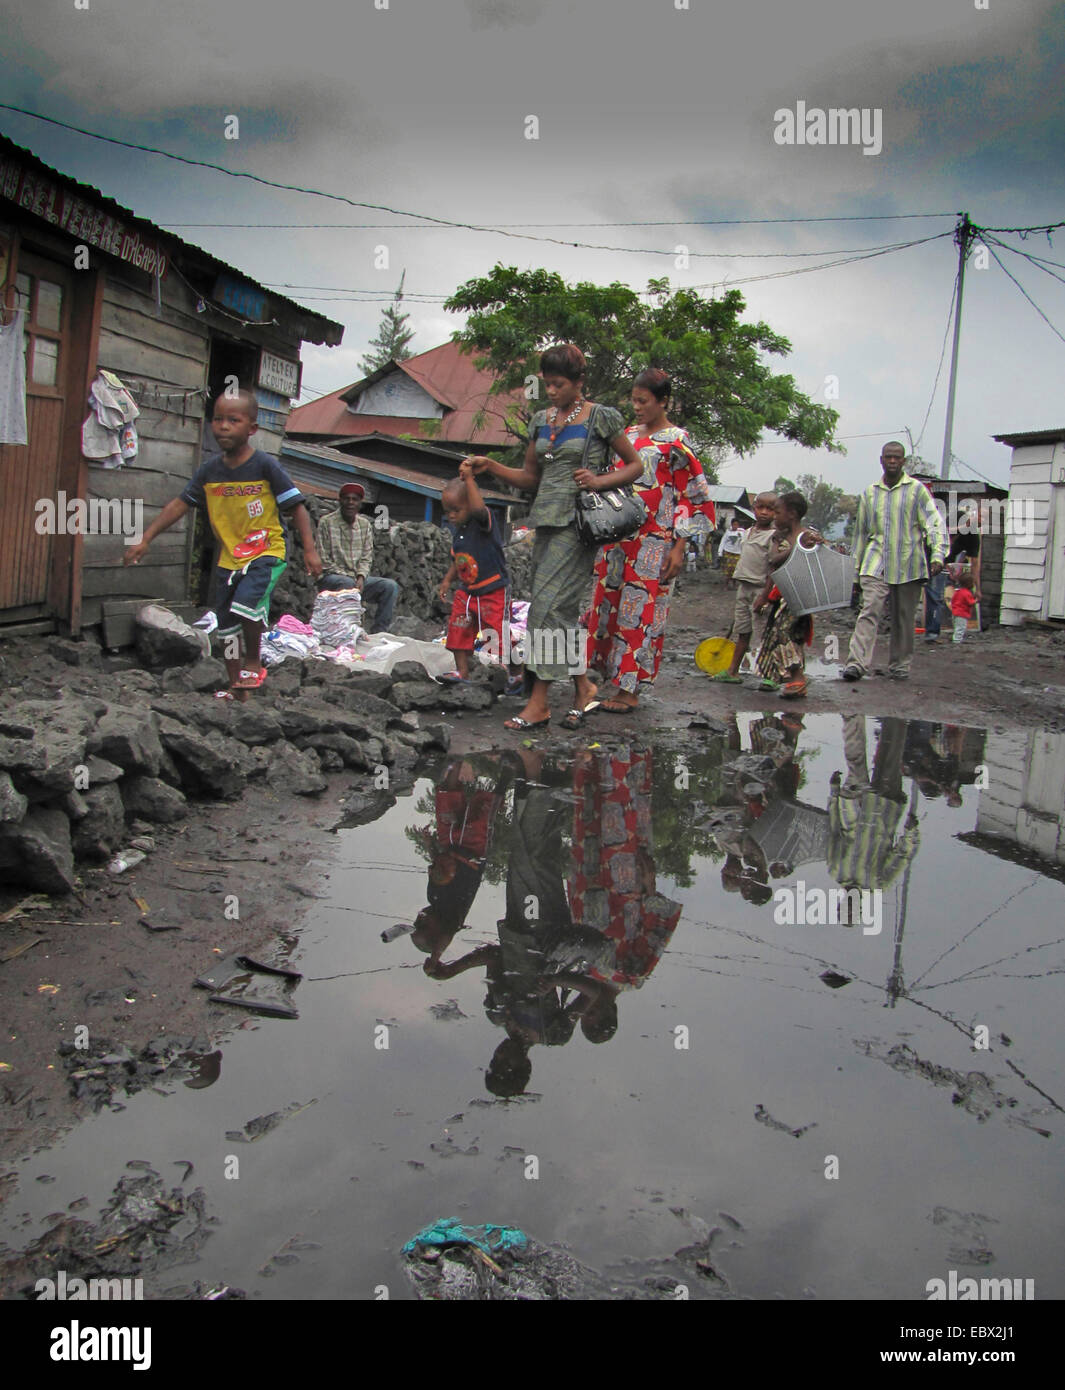 pedestrians walking on lava stones at the edge of big puddles after heavy rain in the rainy season, Republic of Stock Photo